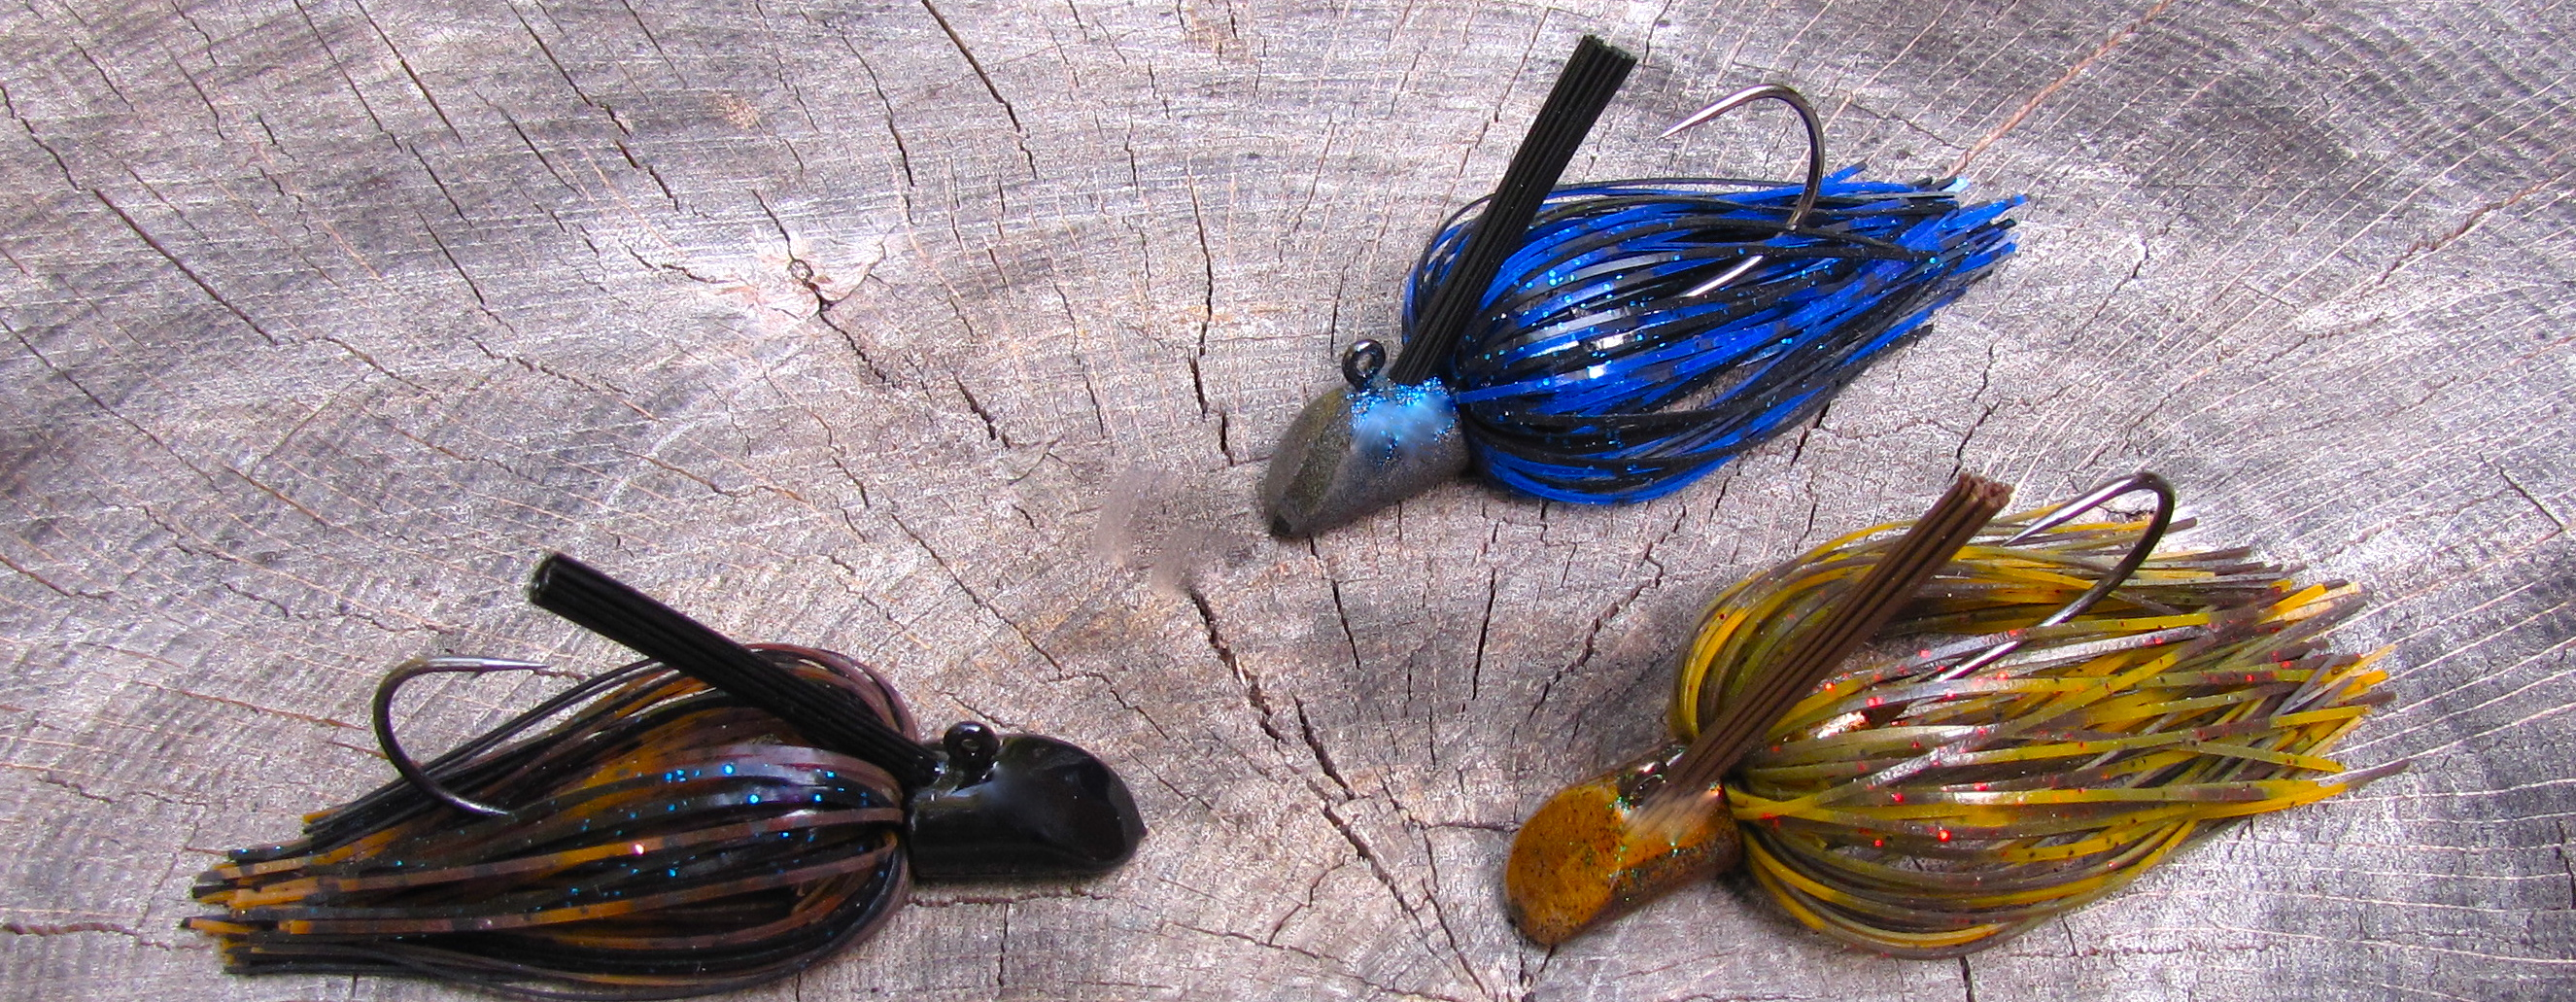 Fishing Frugal Lures Shovelhead Jigs